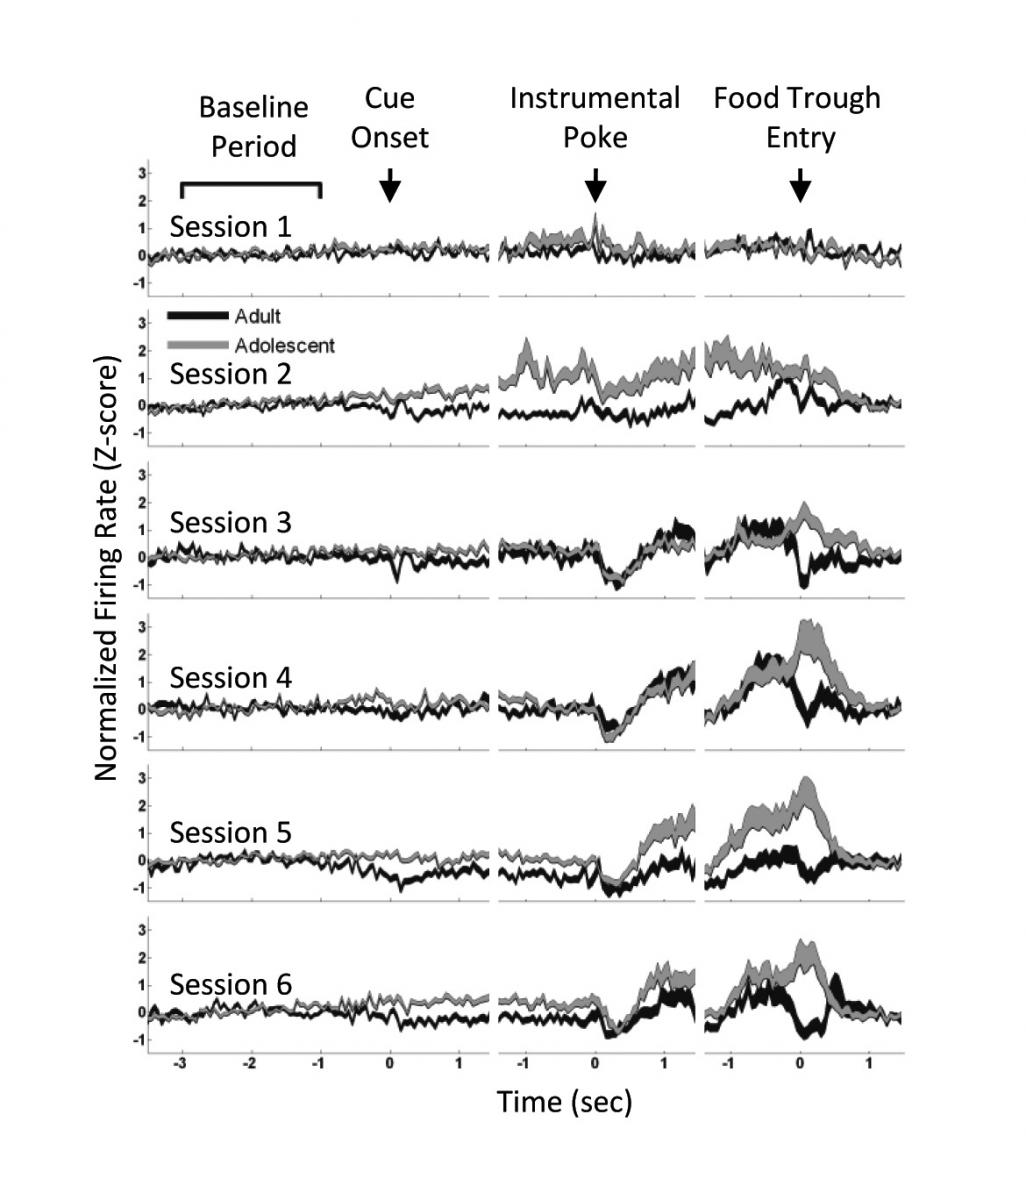 Adult and adolescent neural activity was similar at first. When a reward was expected (sessions 3-6), adolescent brain activity spiked, followed by a slow decrease after the sugar pellet was received (food trough entry). Adults experienced a similar rapid increase in activity followed by a quick return to baseline.